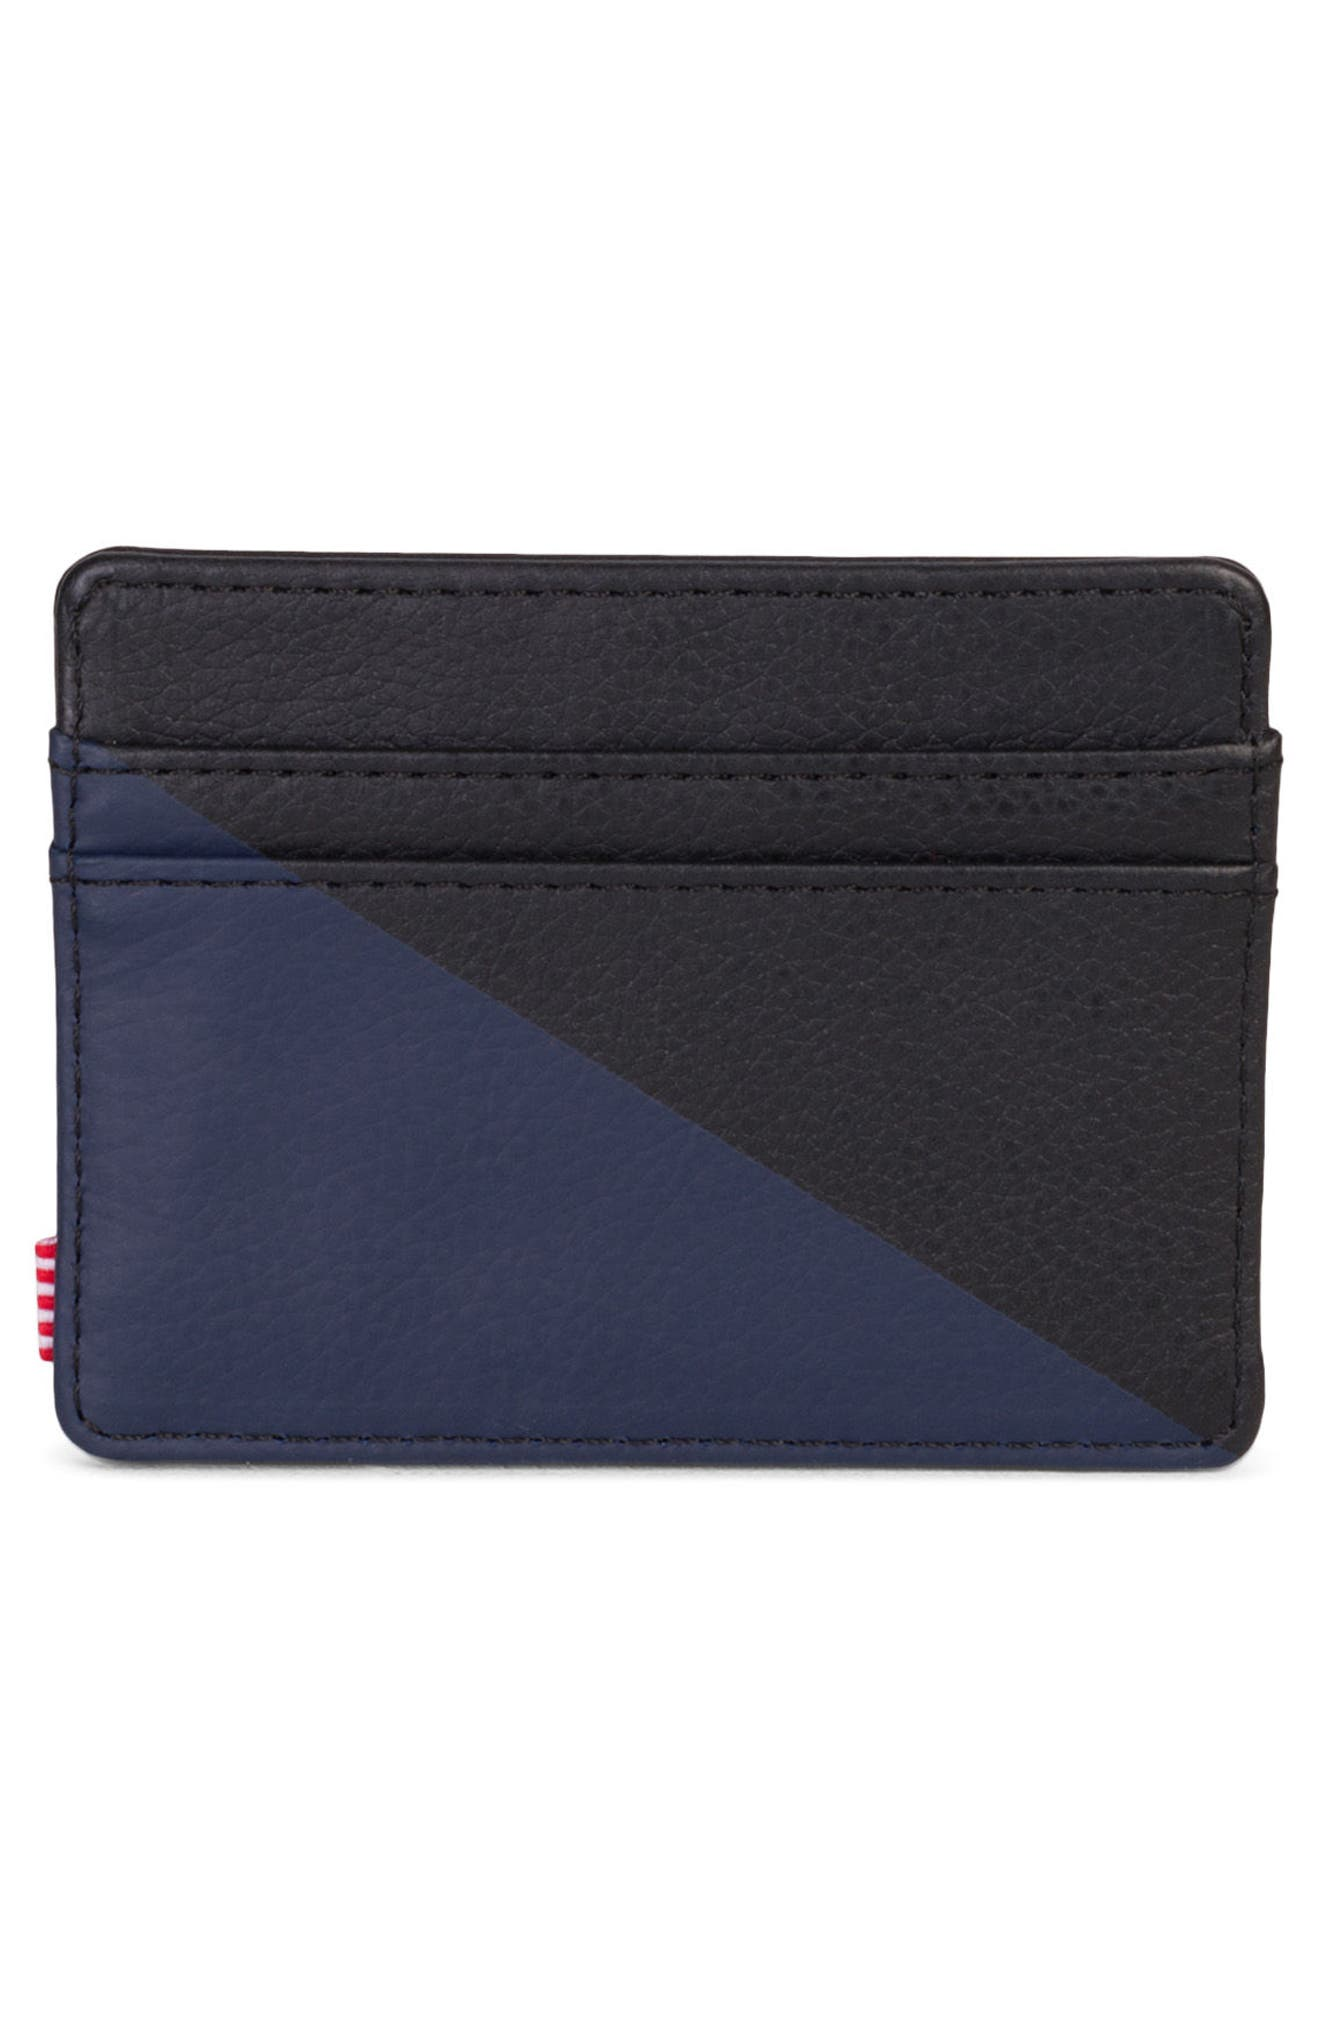 Charlie Leather Card Case,                             Alternate thumbnail 3, color,